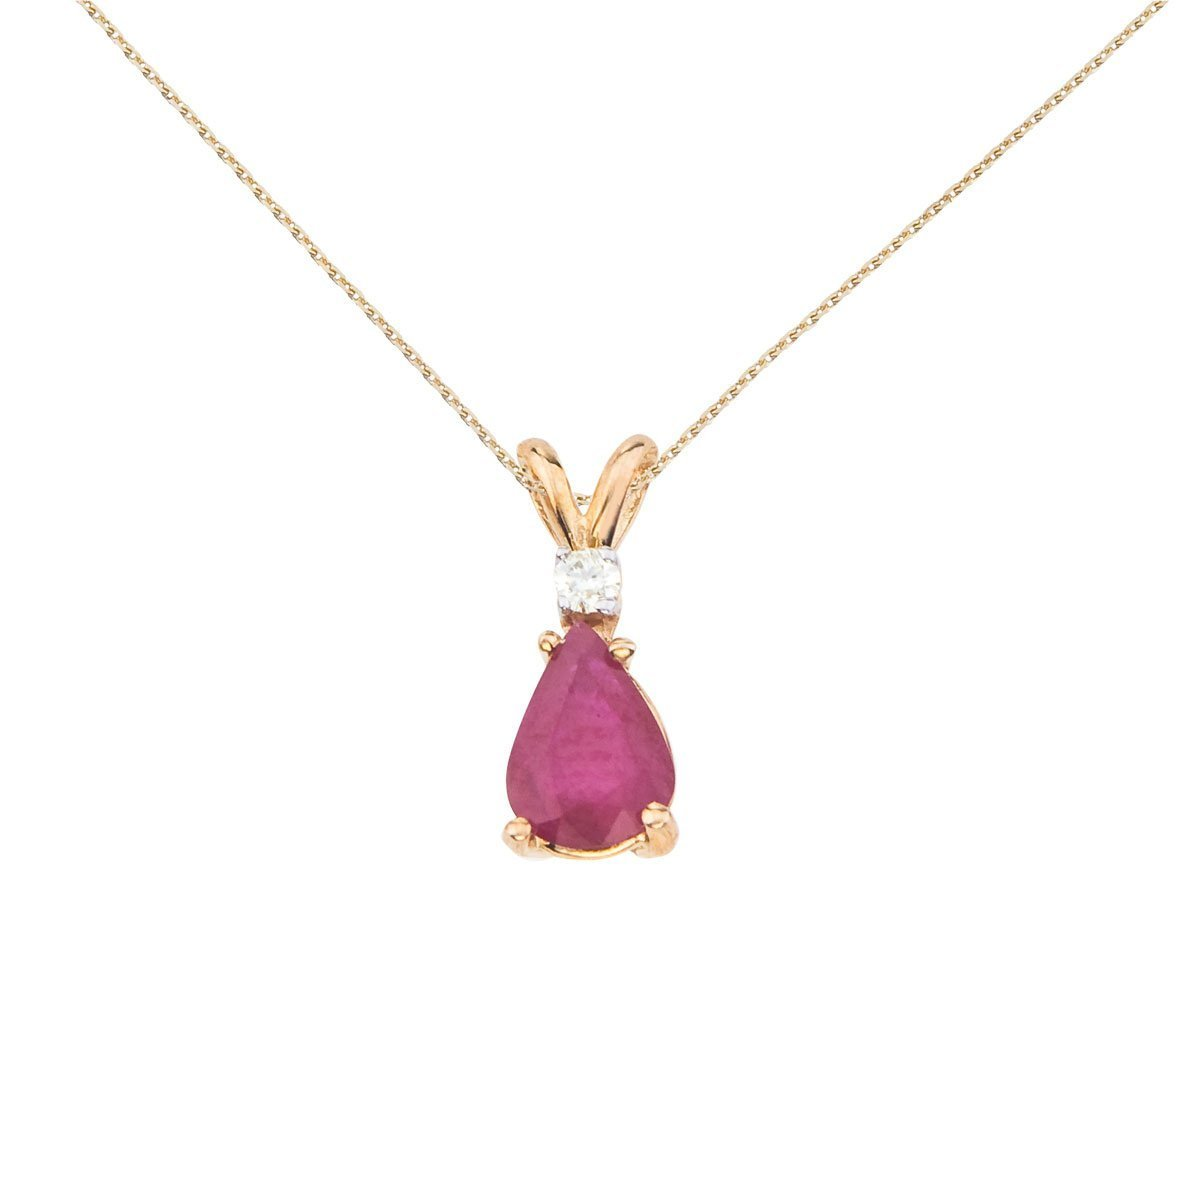 0.7 Cttw. FB Jewels Solid 14k Yellow Gold Genuine Birthstone Pear Shaped Gemstone and Diamond Oval Pendant